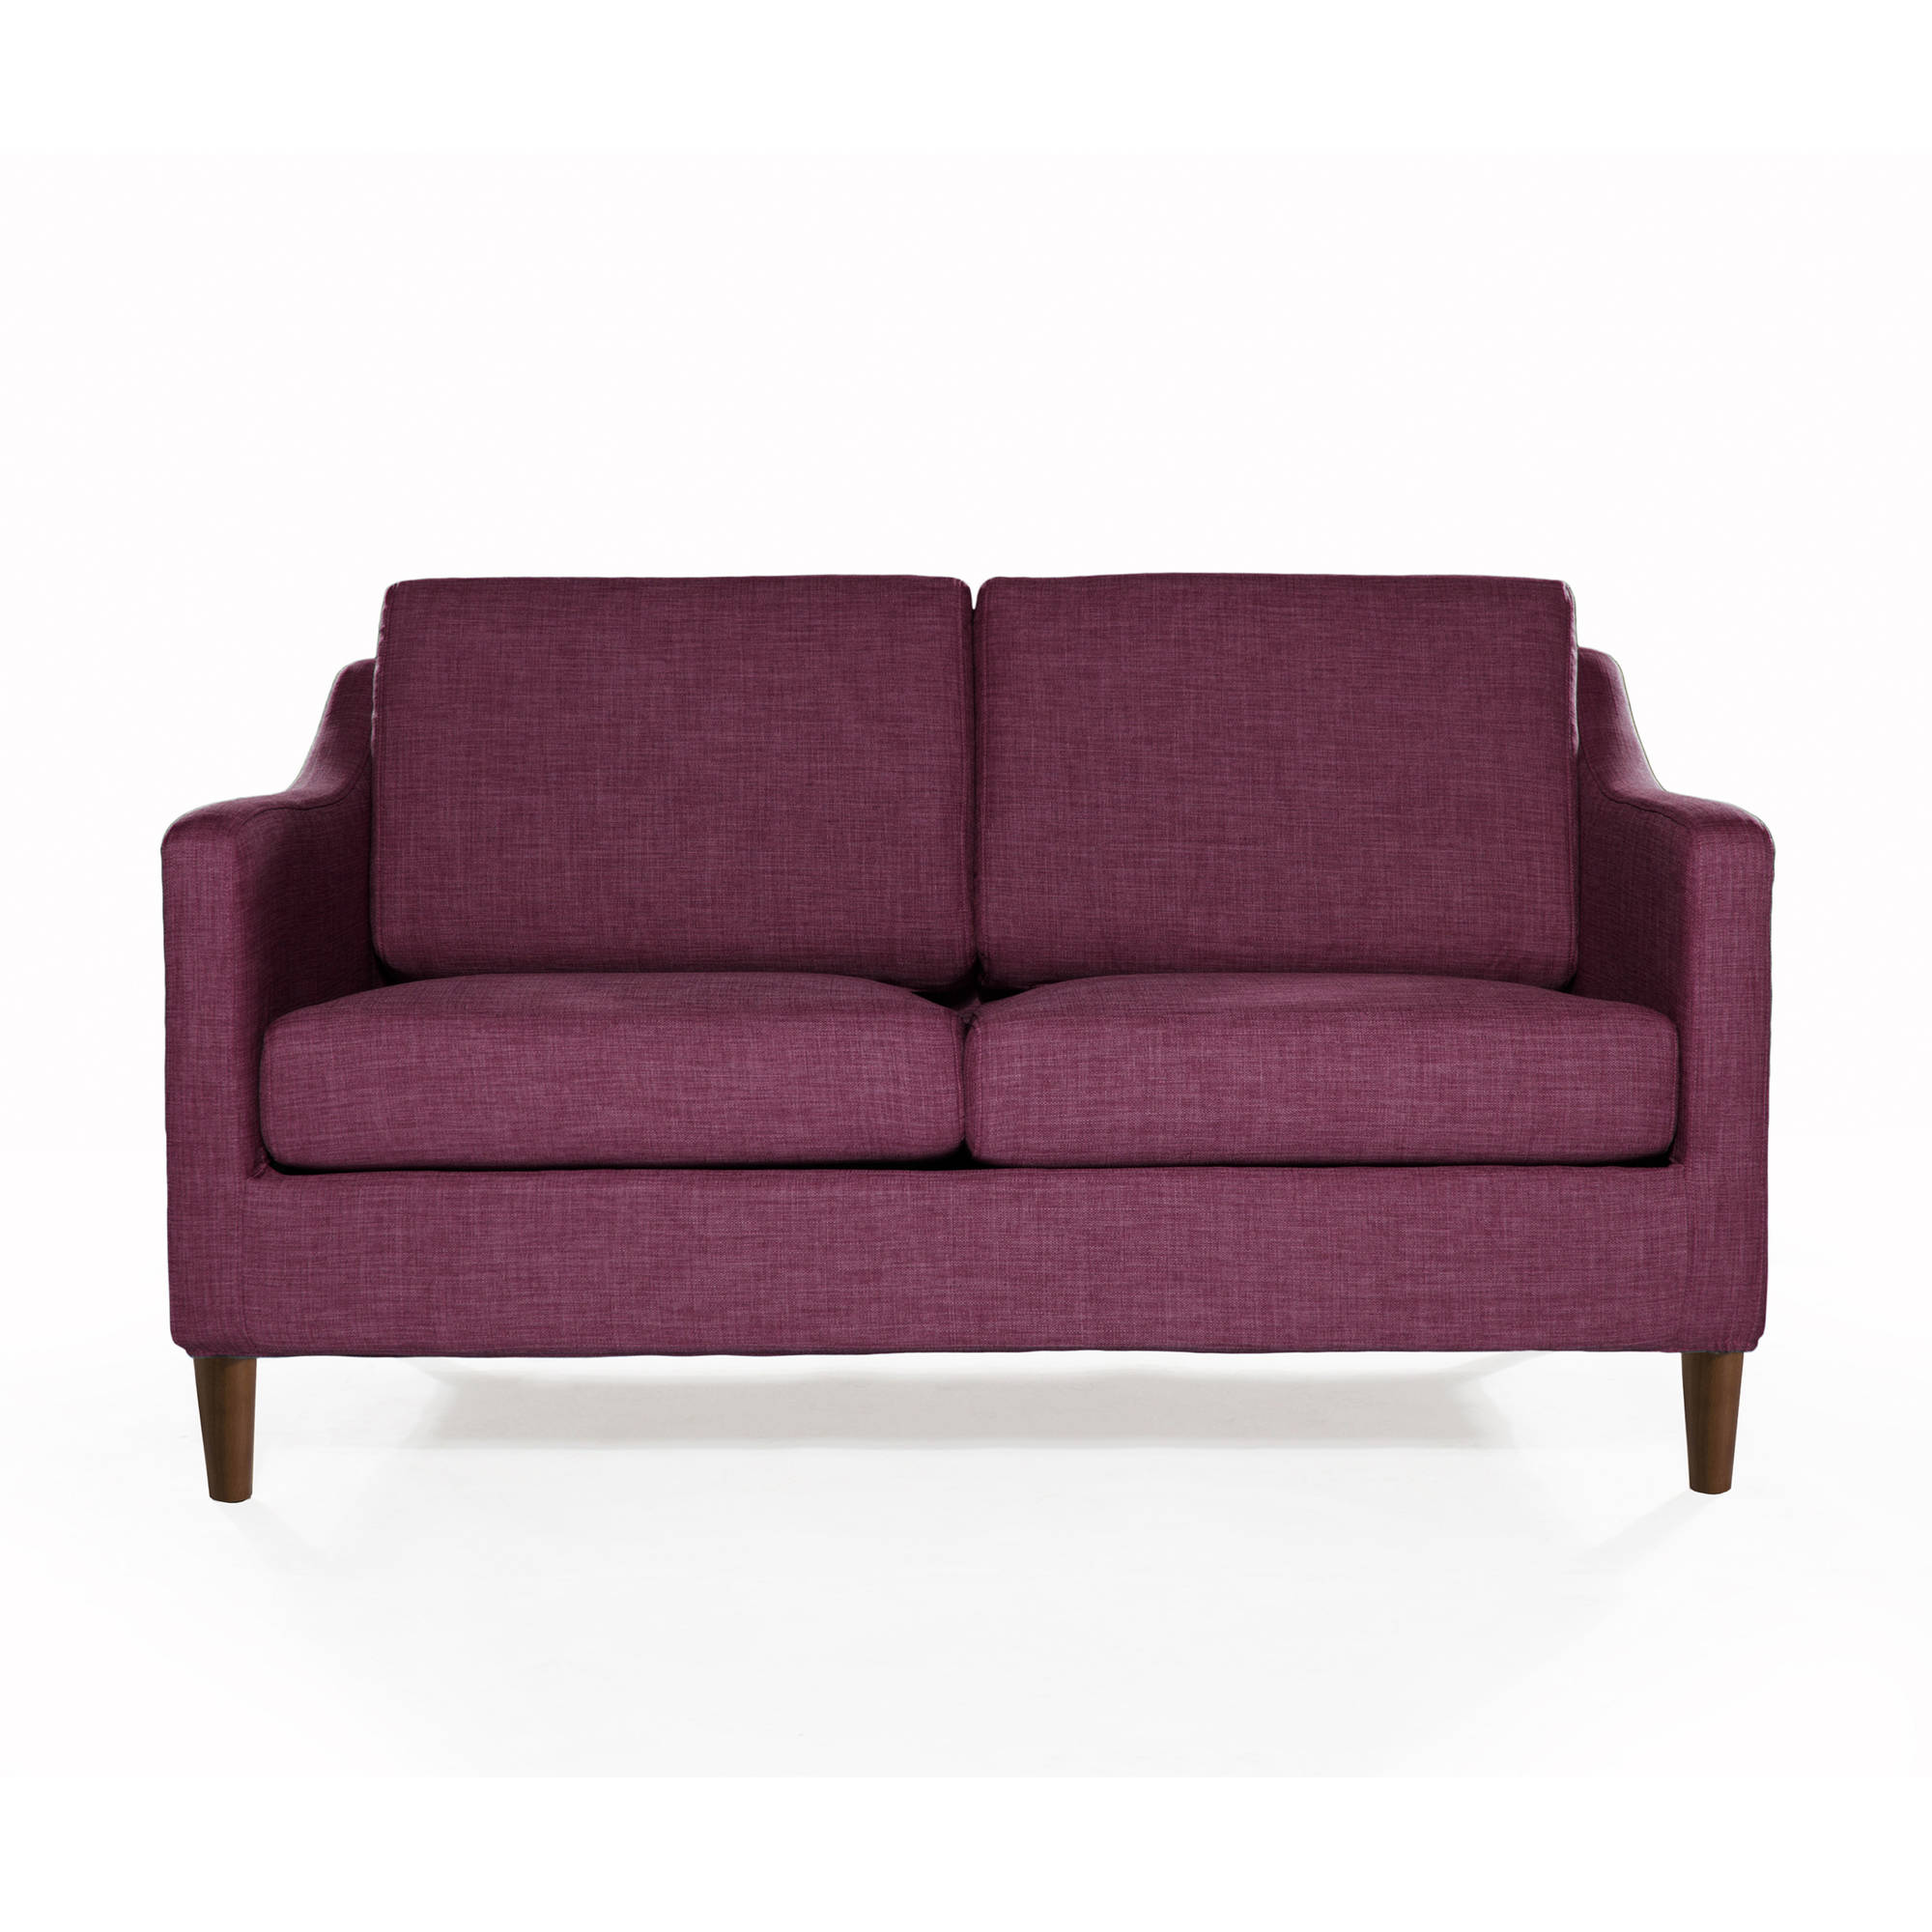 Loveseats  sc 1 st  Walmart : walmart sofas and sectionals - Sectionals, Sofas & Couches